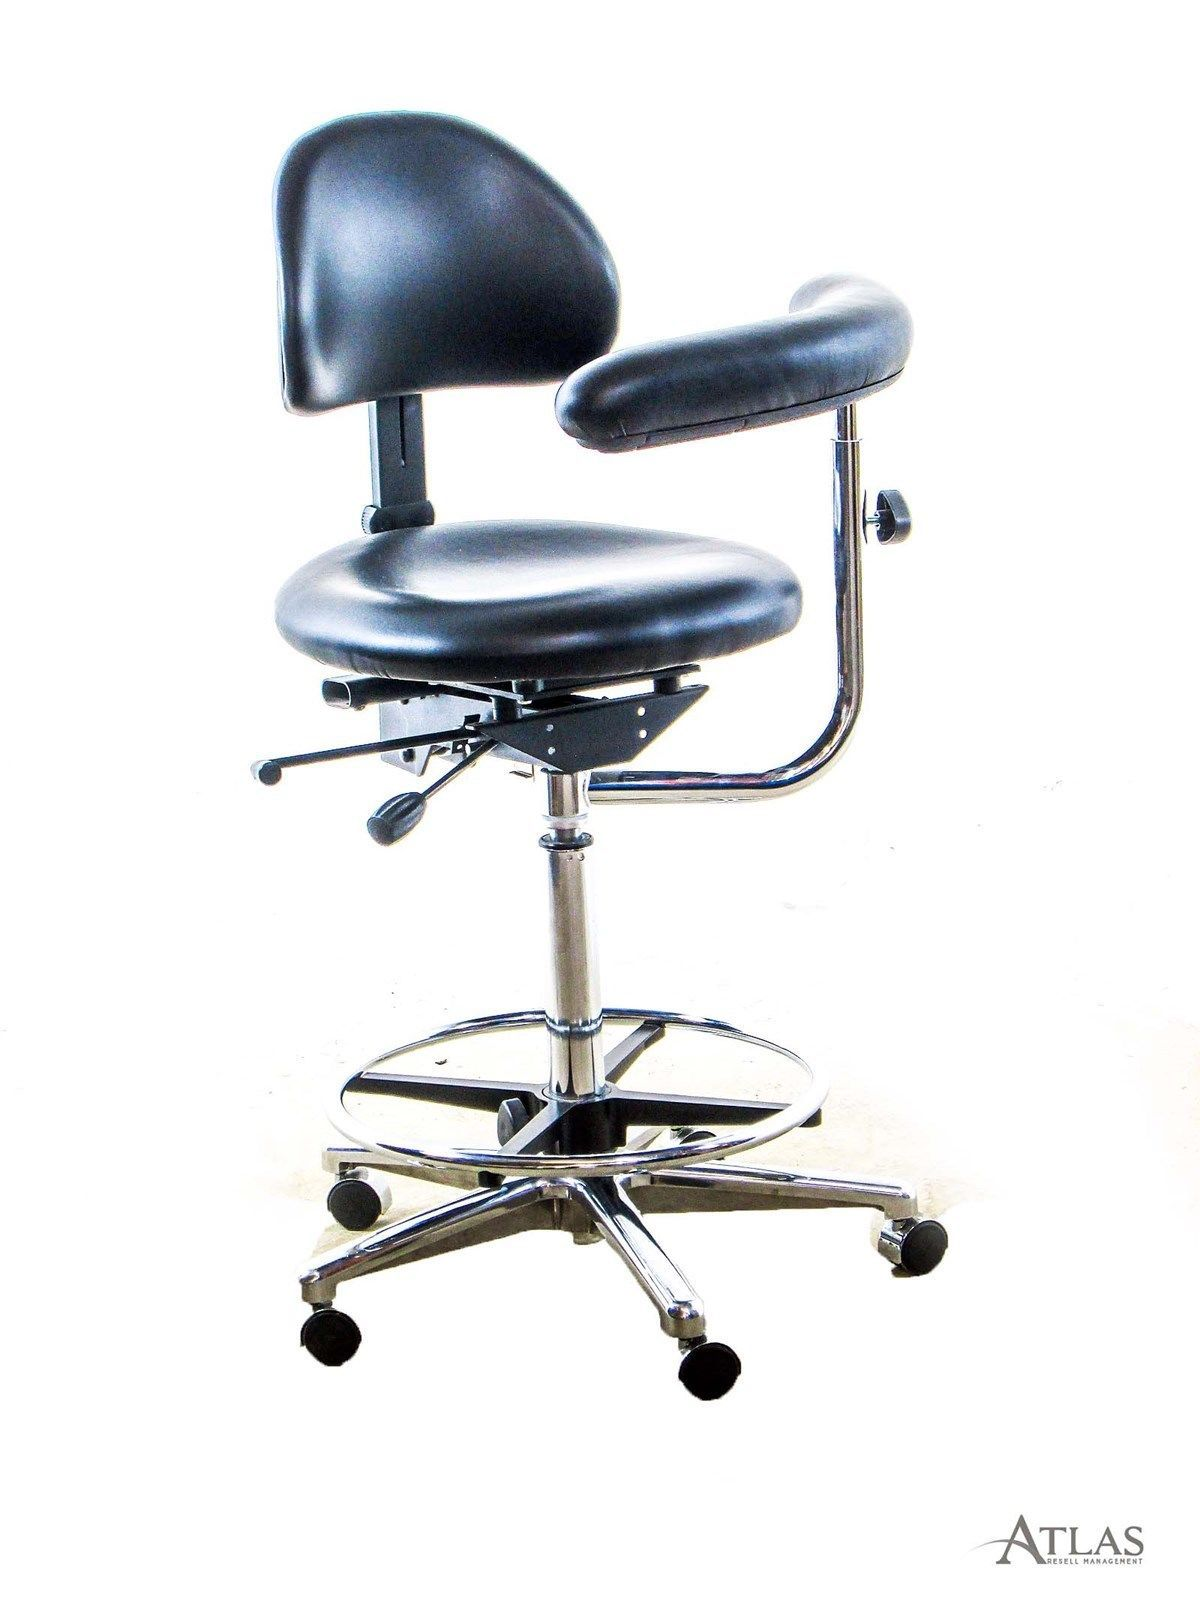 Dental assistant chairs - Productive Practices Dental Assistant Stool W Black Ultraleather Upholstery Black Ultraleather Upholstery